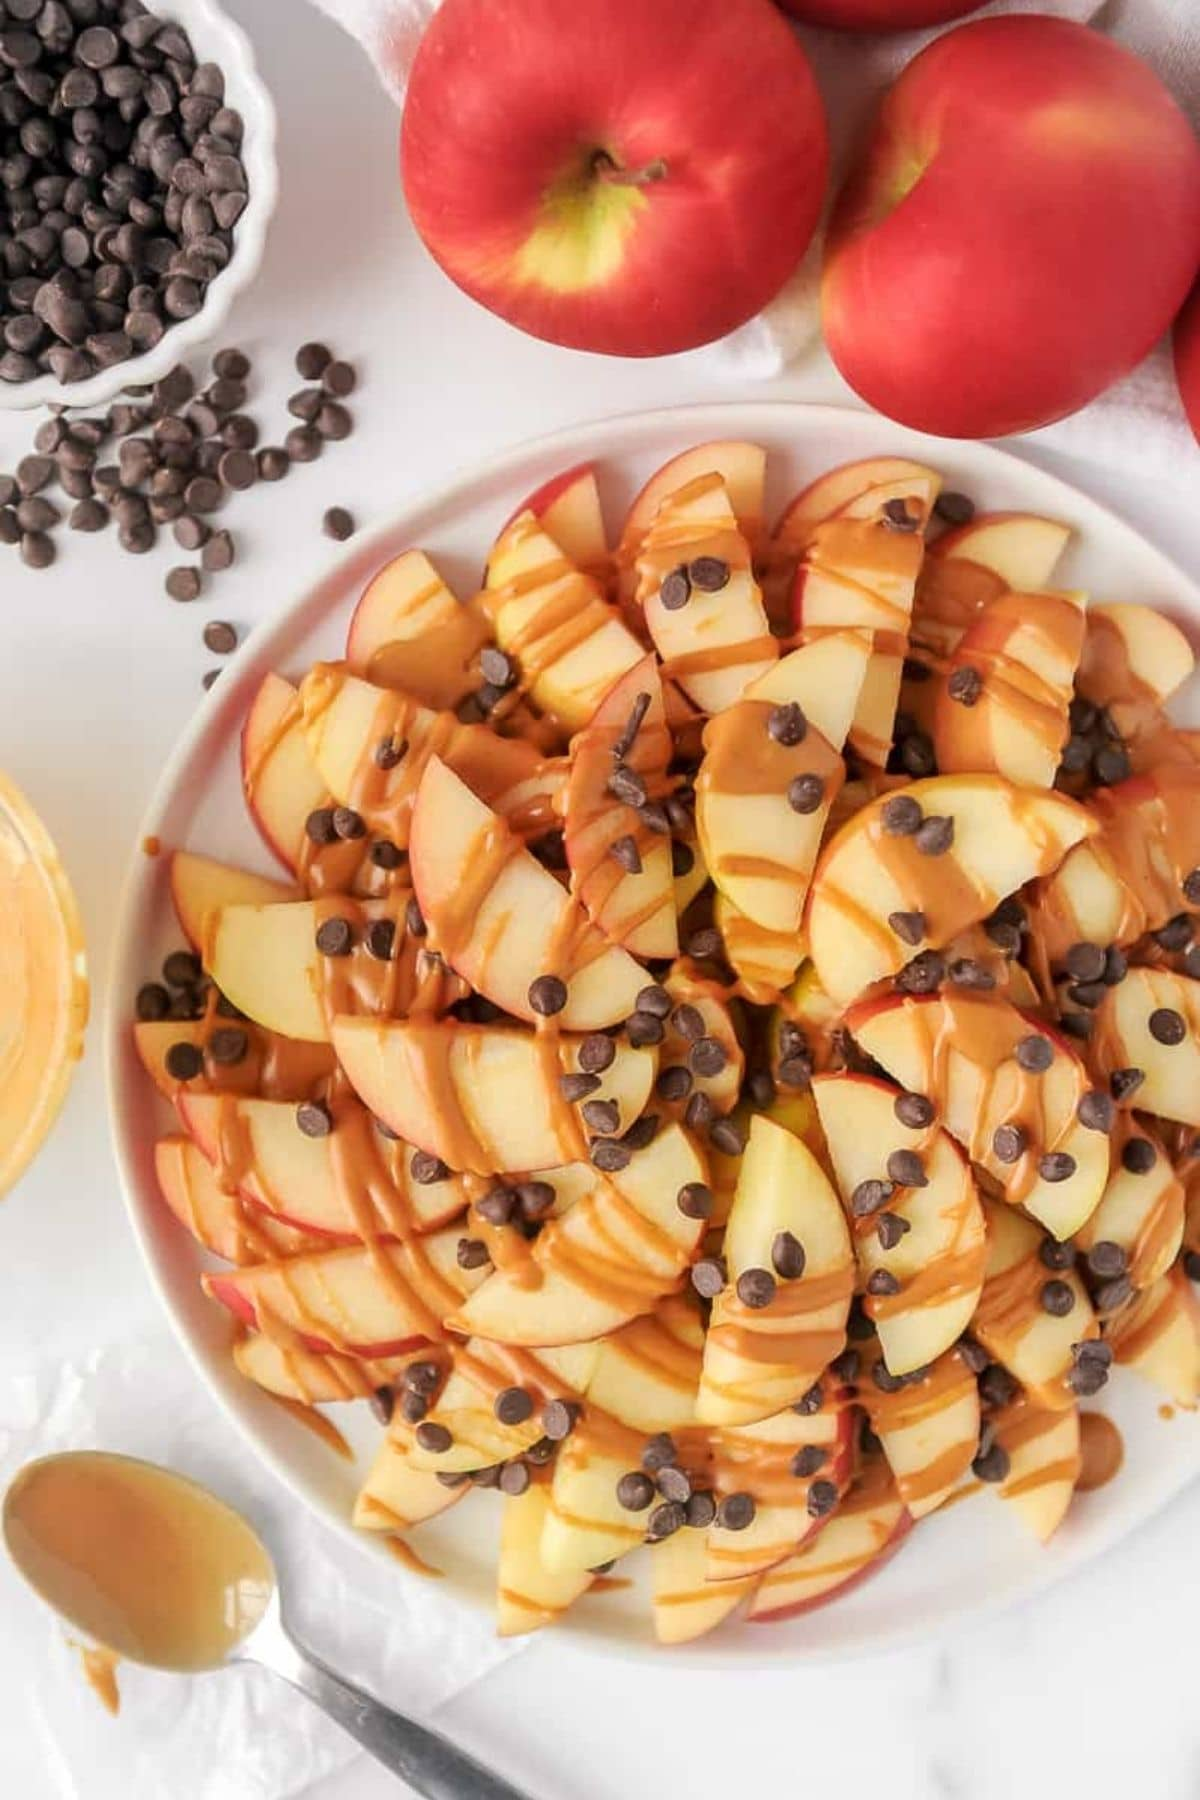 Apple nachos on white plate with mini chocolate chips